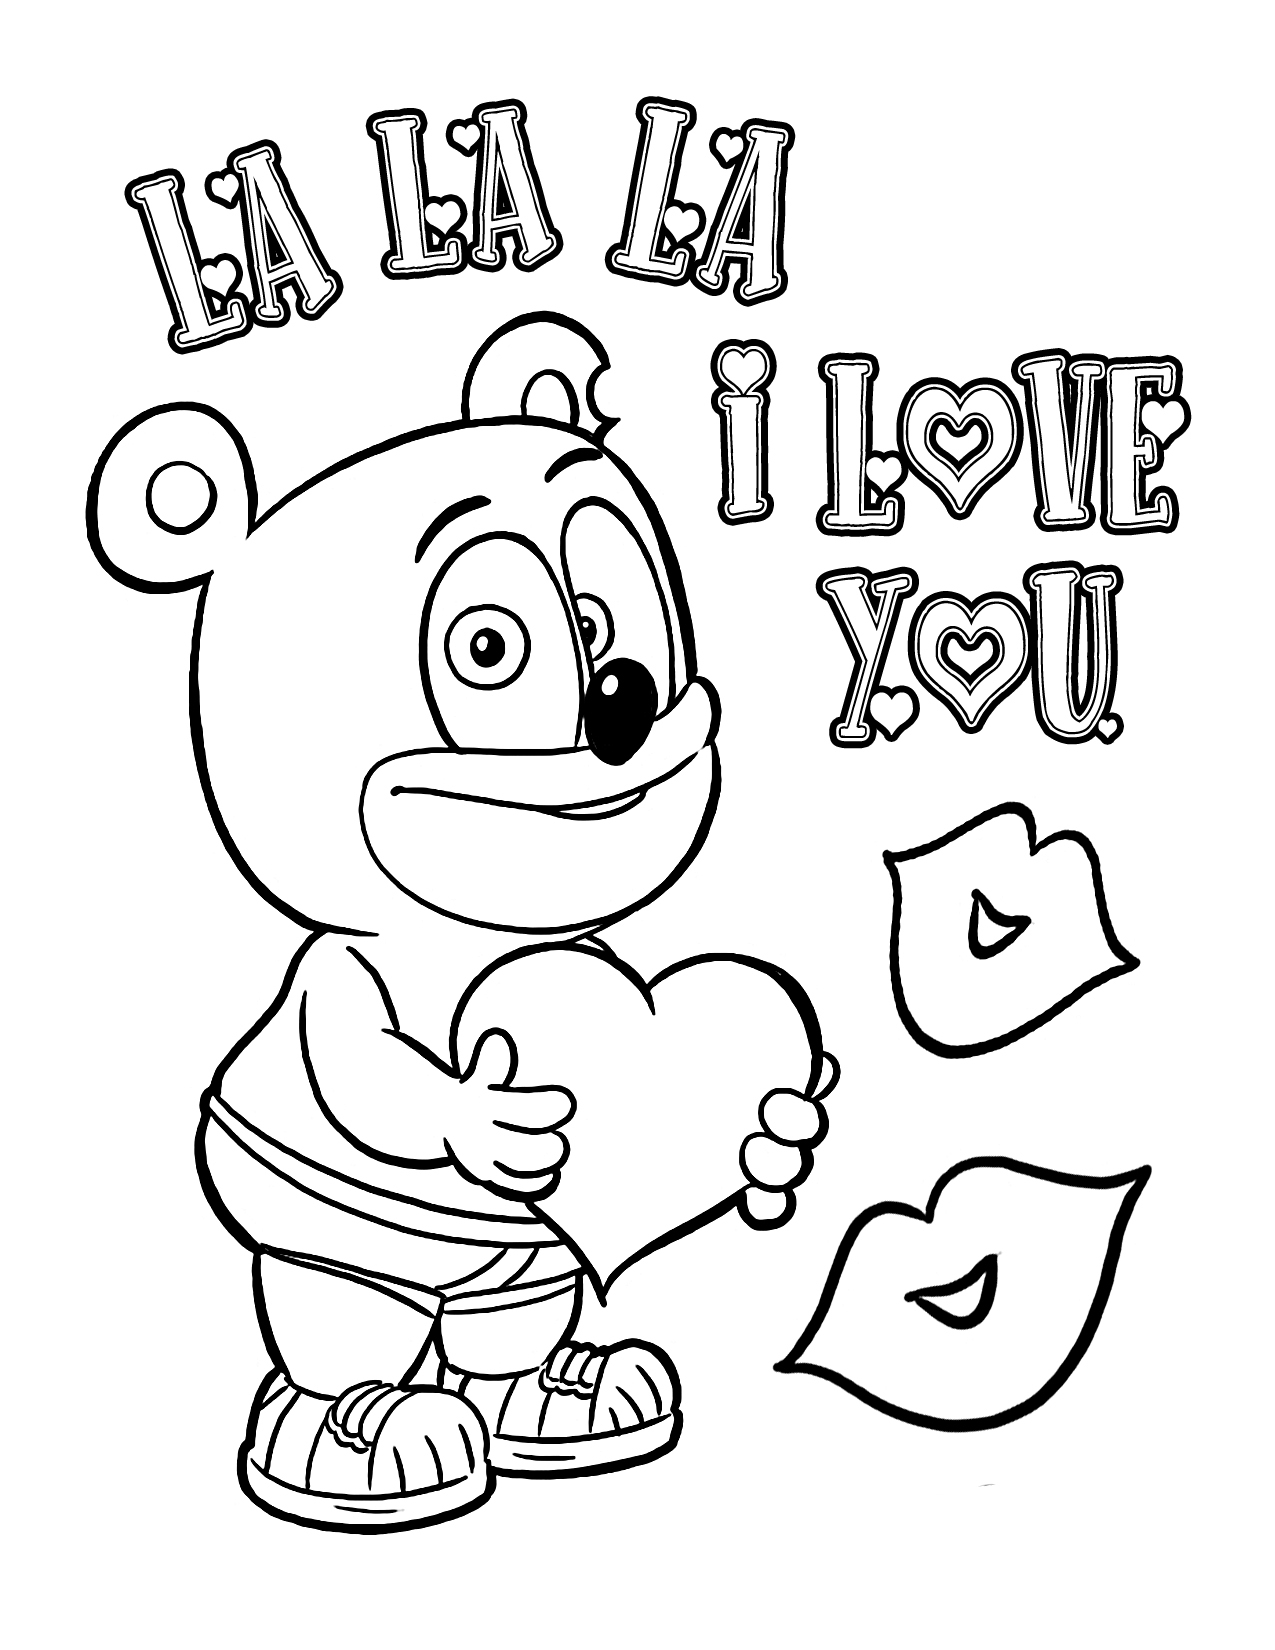 gummy bear coloring page - coloring page